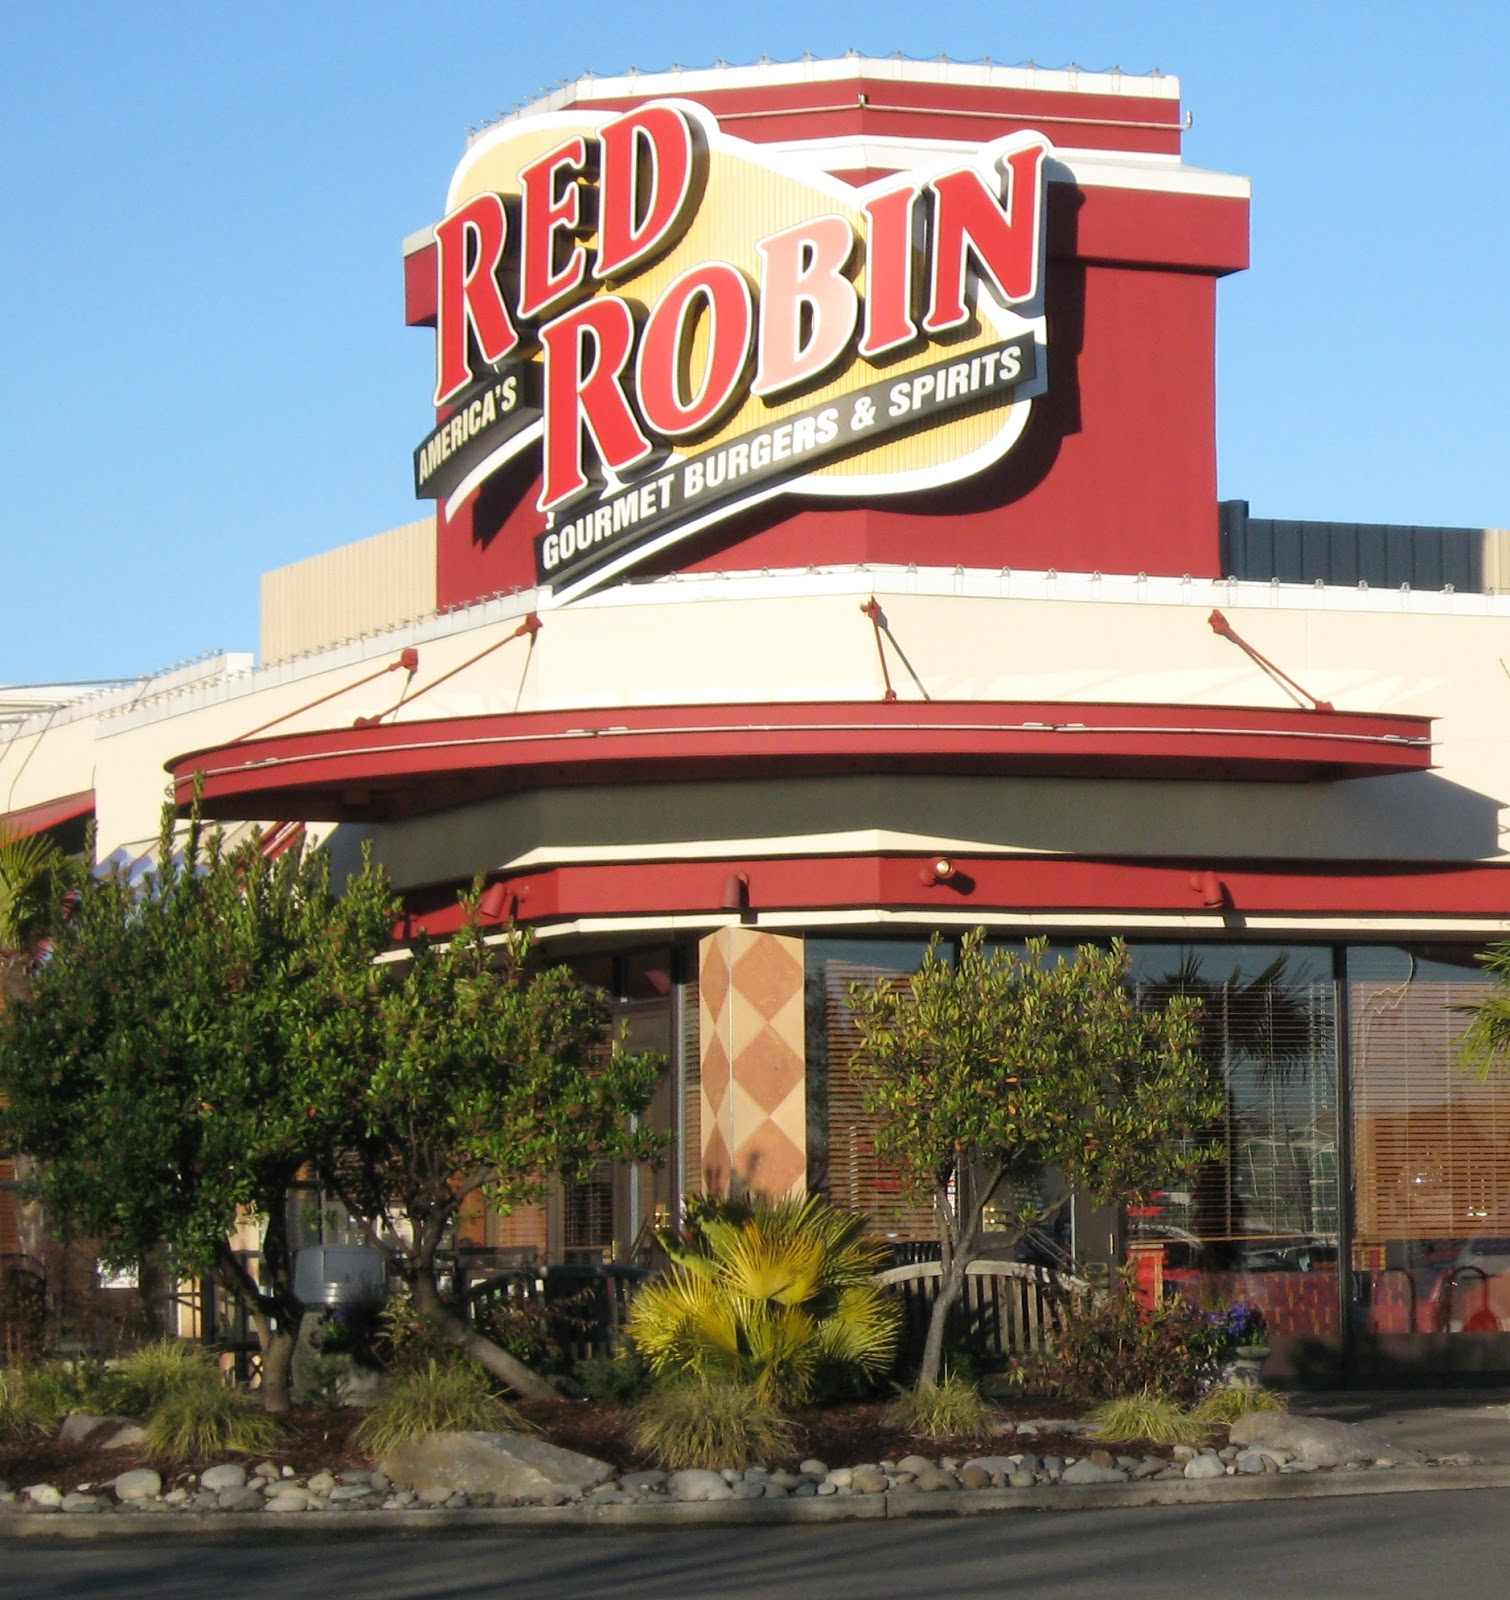 Red Robin Coupons - Printable Coupons 2019 - Free Red Robin Coupons Printable